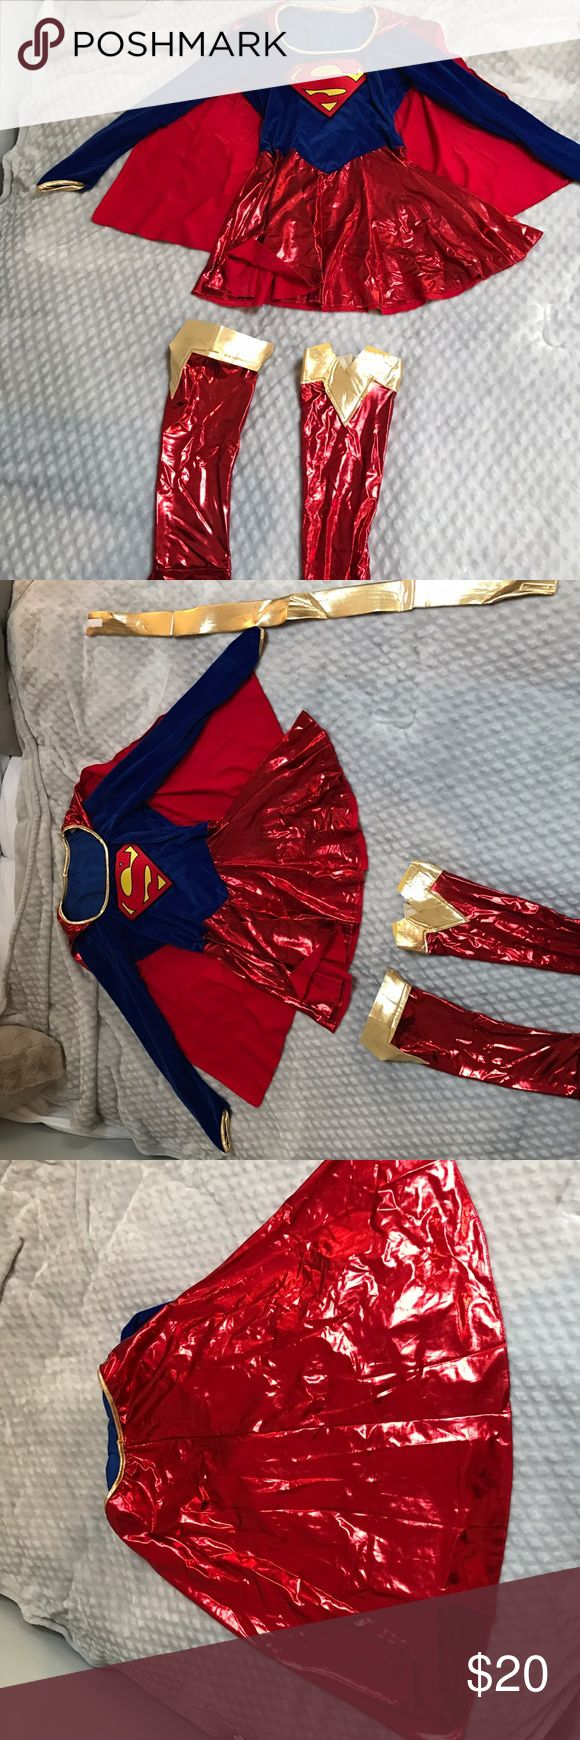 """Super woman costume Need a Halloween costume or a costume for a party?! Super Woman! Super comfortable and flattering. Has a cape and a gold belt that you Velcro around your waist. Comes with little """"shoes"""" that you wear on your calves. Other"""